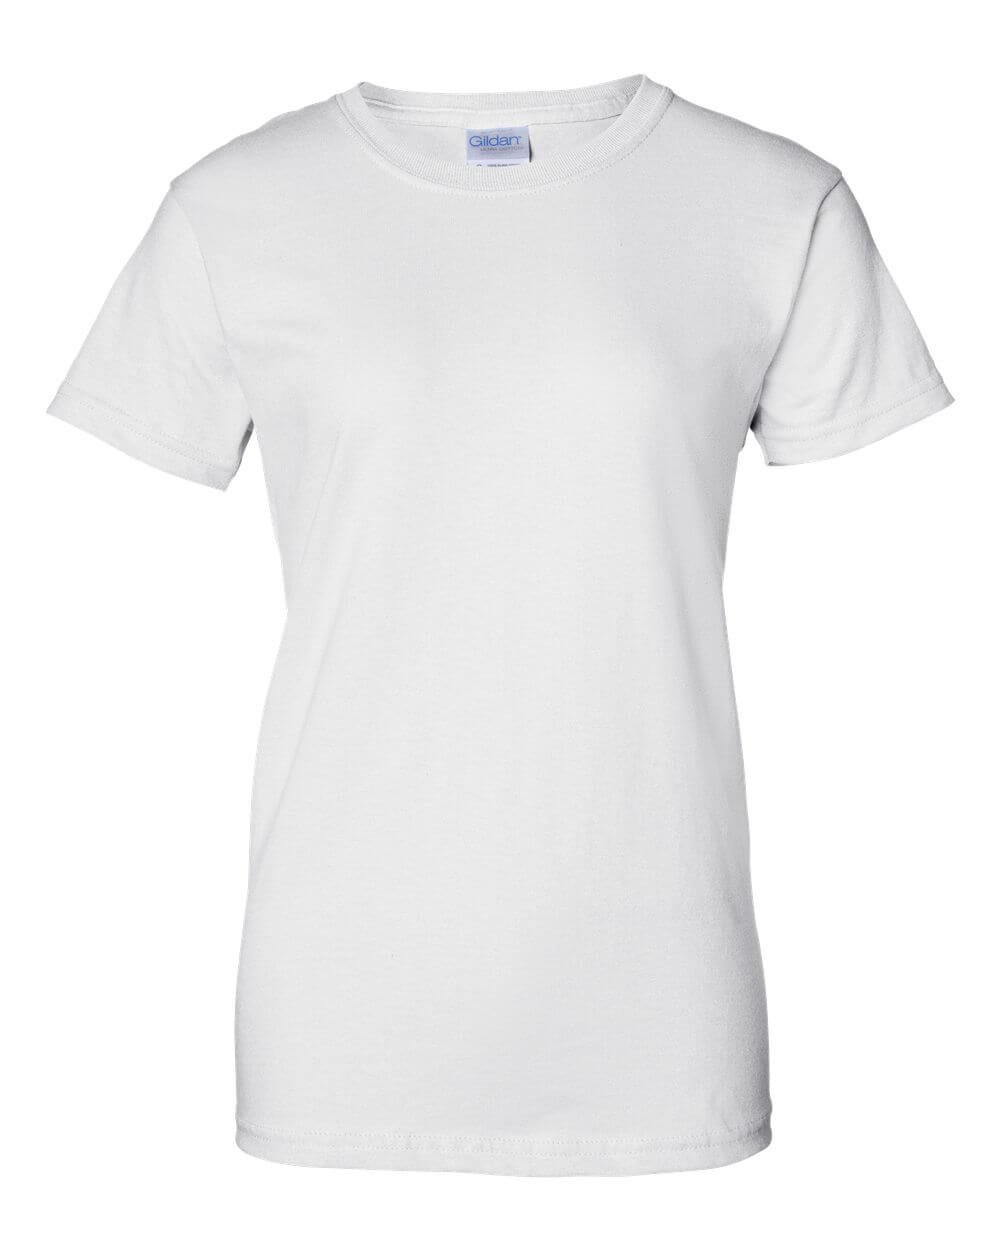 Gildan_2000L_White Custom T Shirts